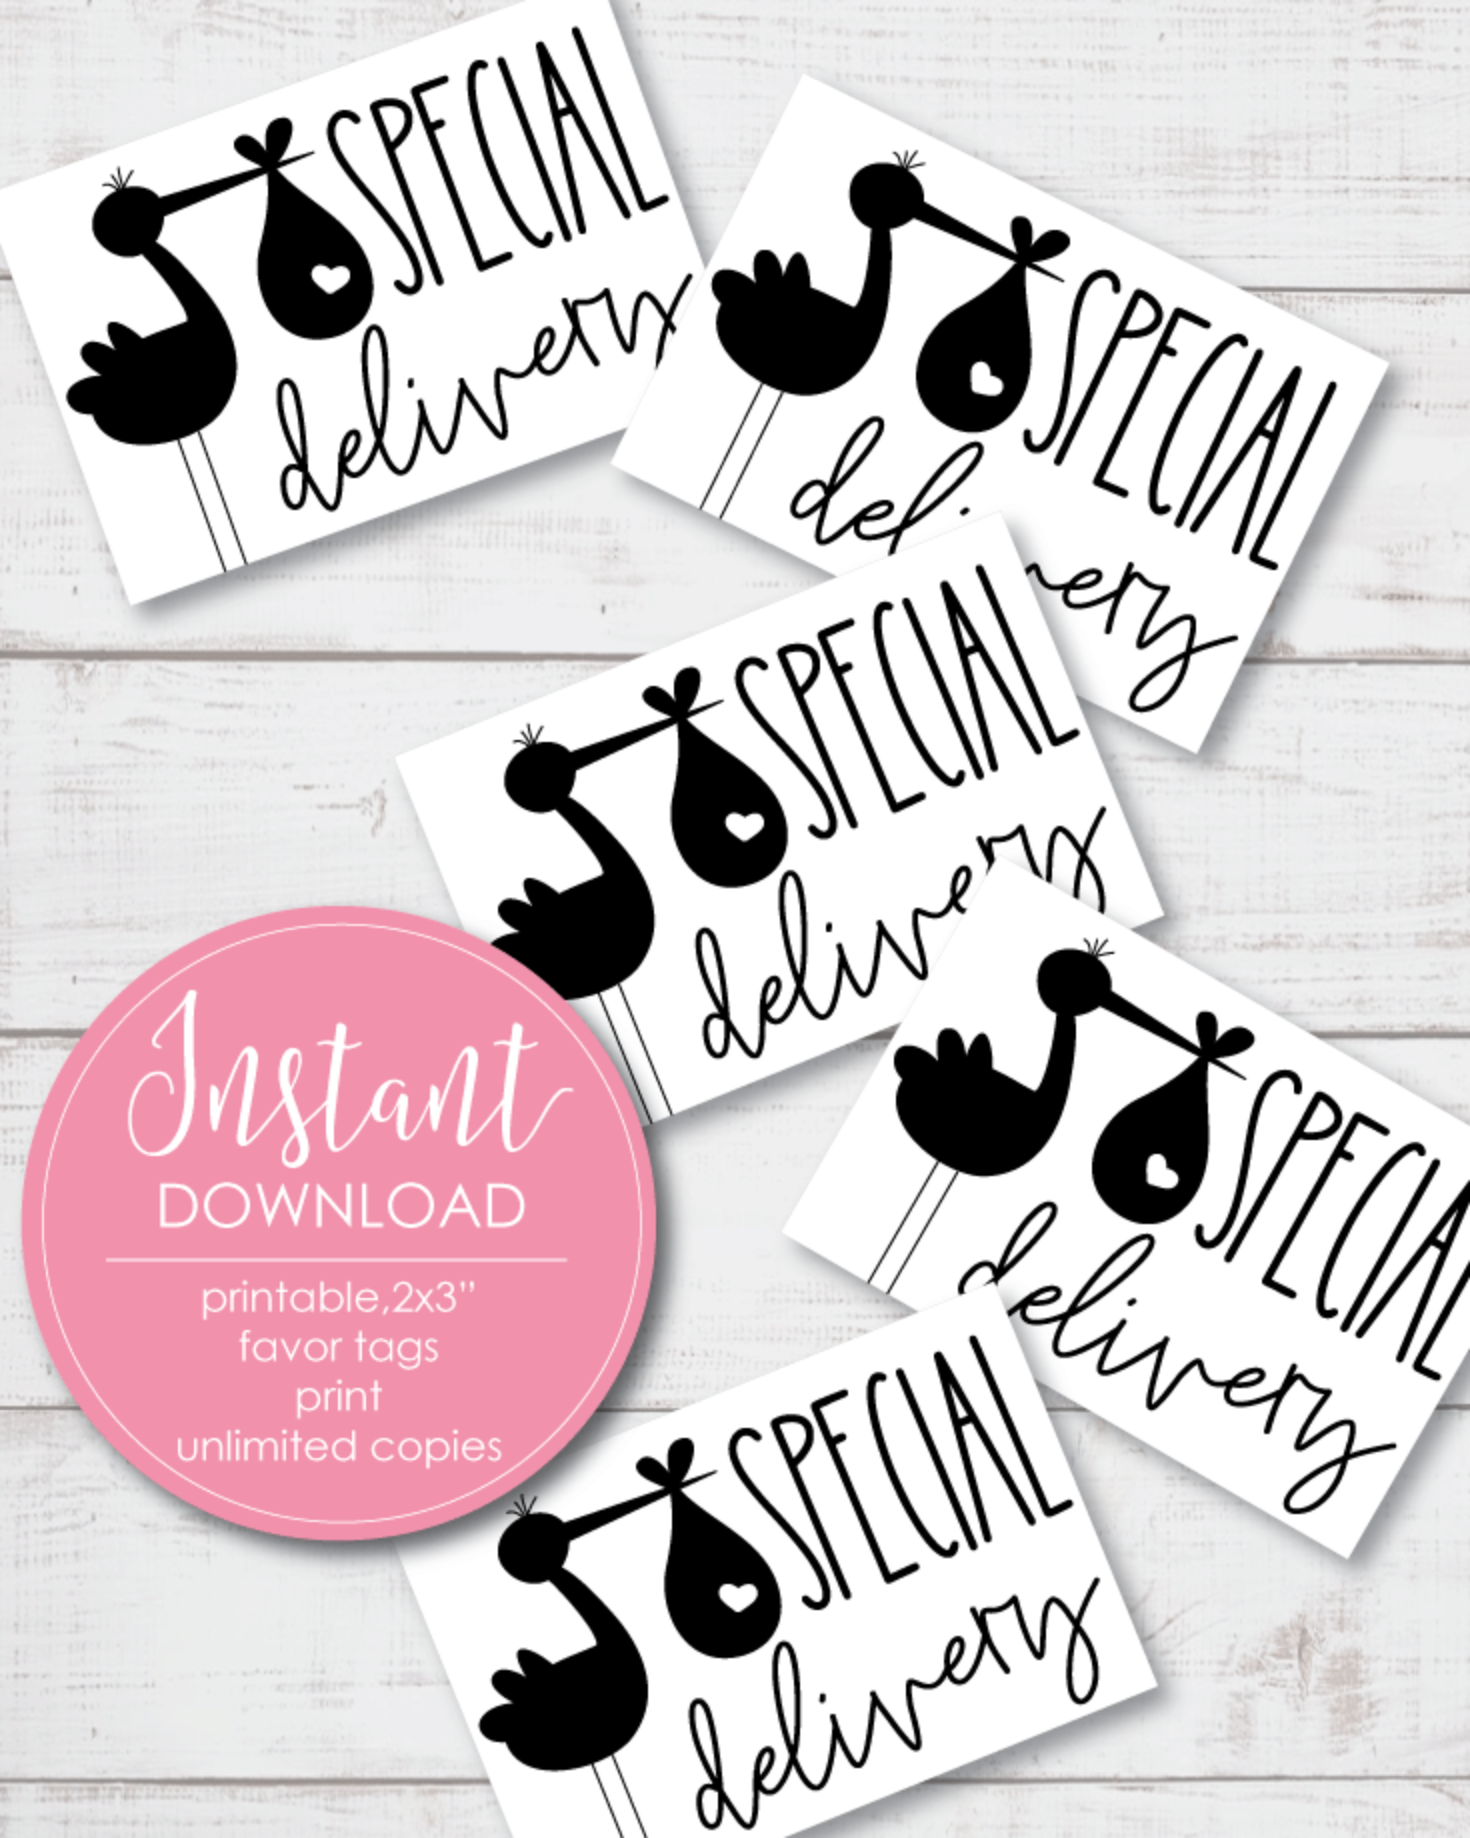 Printable Stork Gift And Favor Tags - Black And White 2x3""